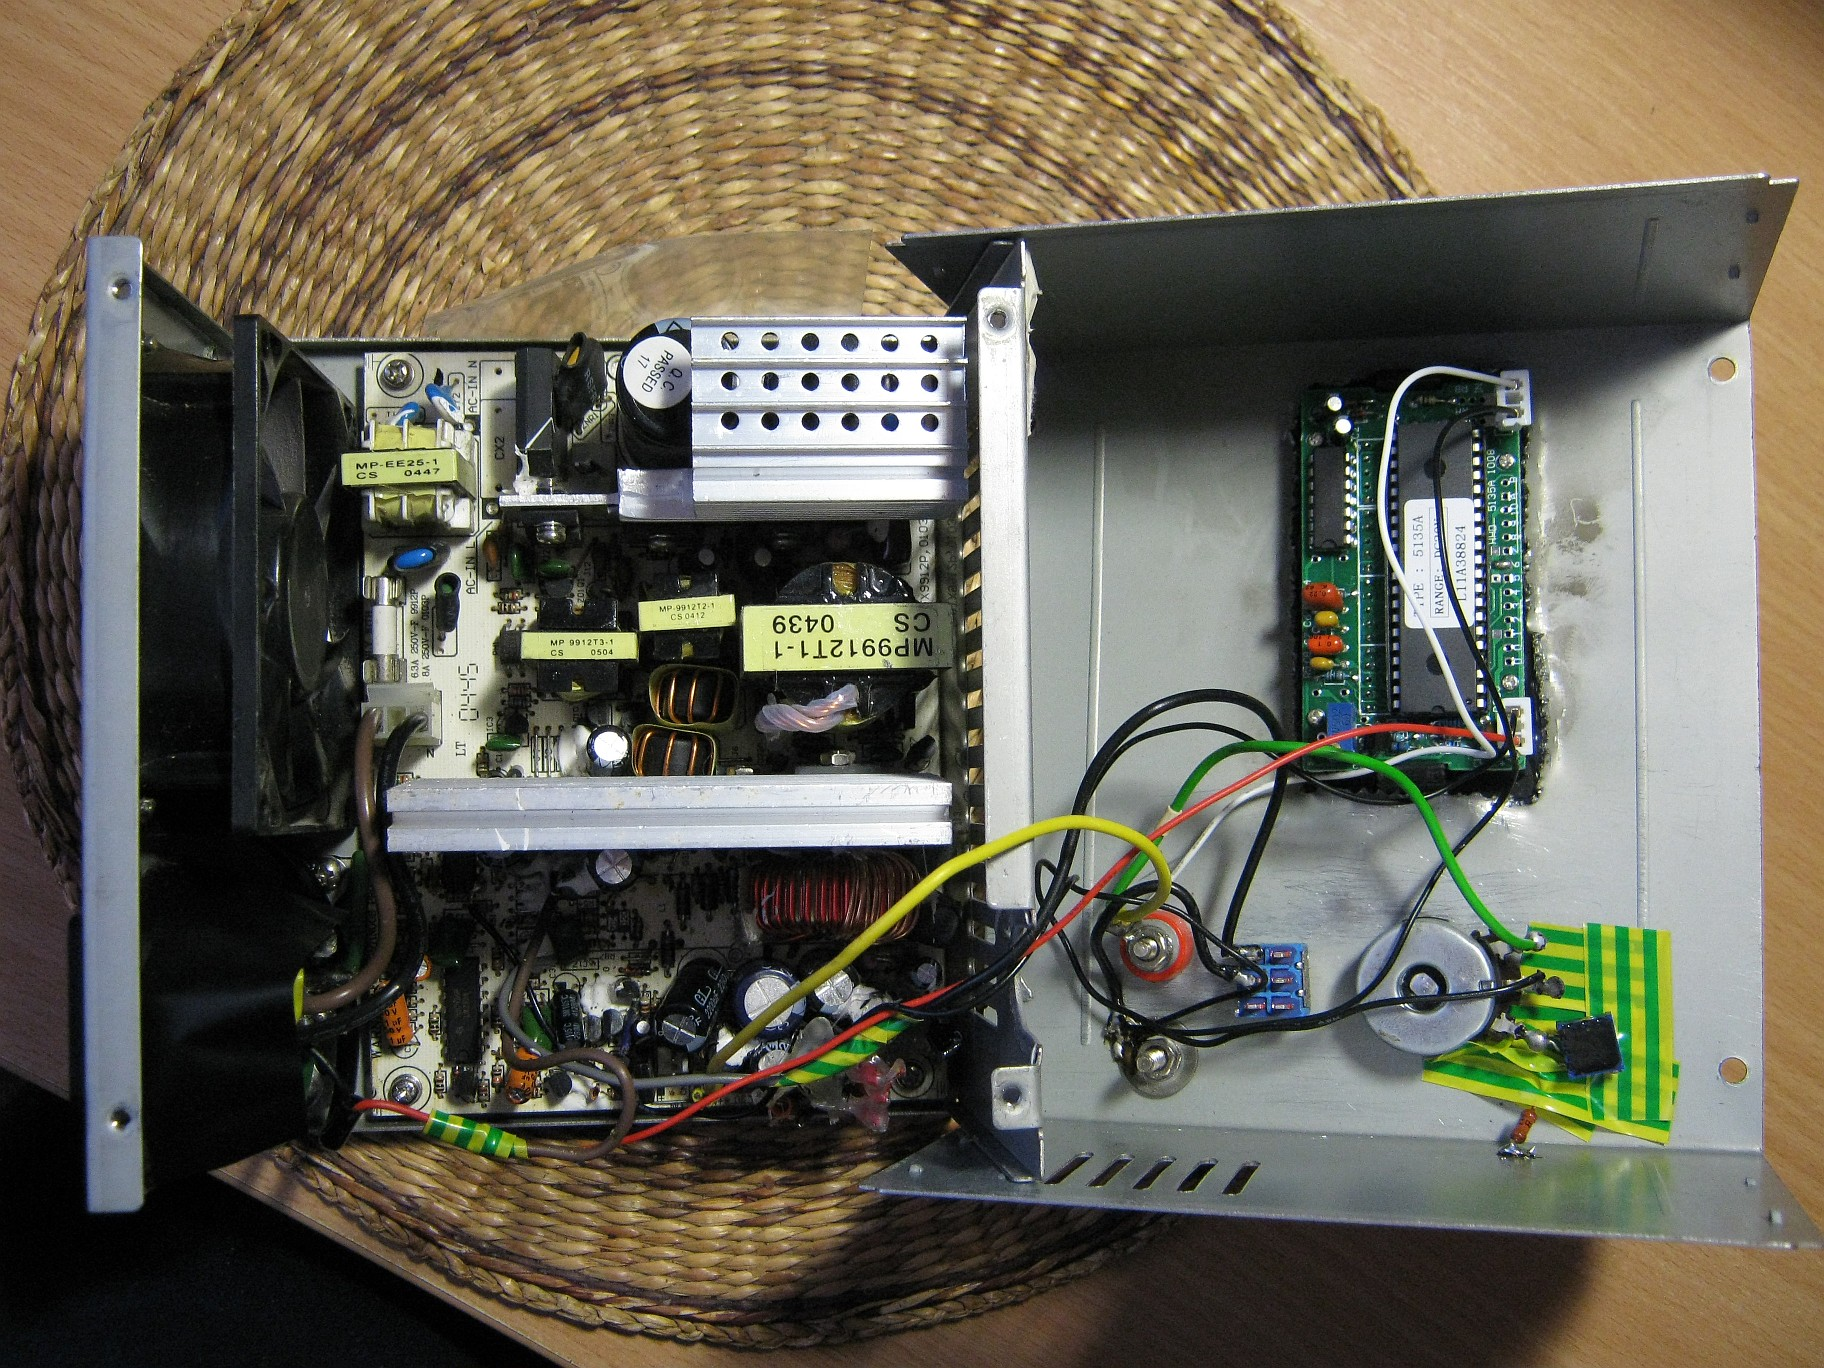 Fully Regulated Atx Power Supply Bogin Jr Volt 2 Amp Psu Single Ic Regulator Conversion Inside View